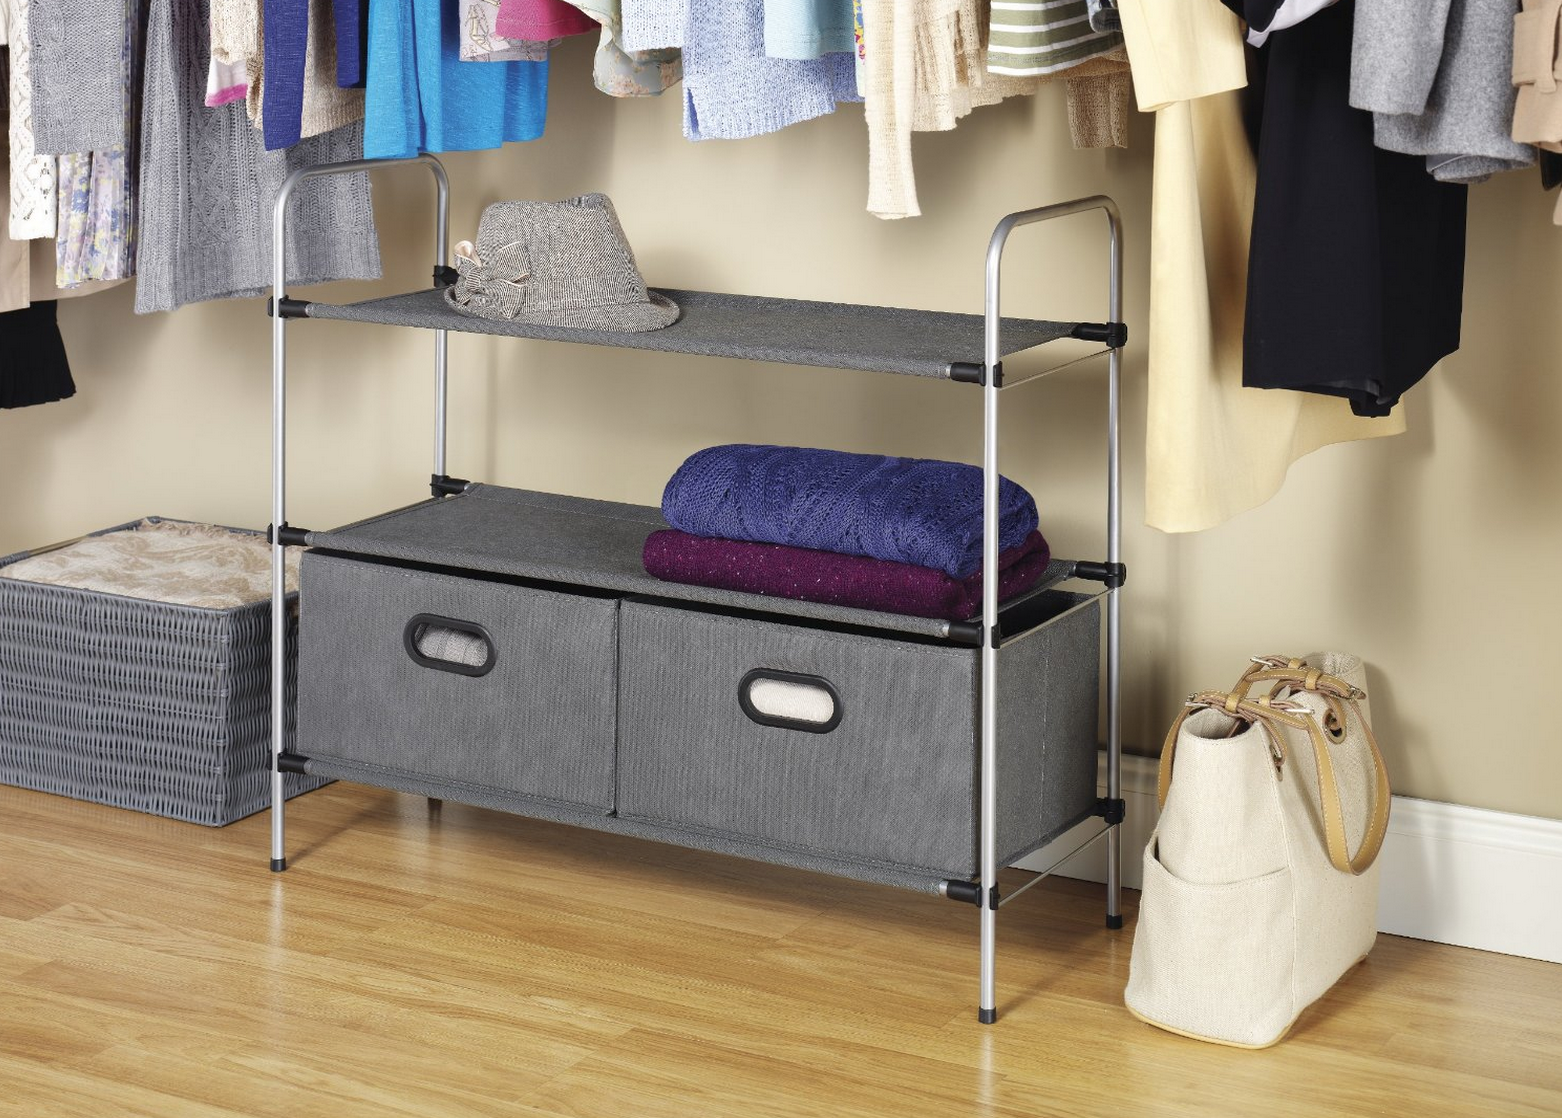 Whitmor Closet Organizer 3 Tier Shelves with 2 Collapsible Drawers Only $19.63 (Reg. $39.49!) – Best Price!